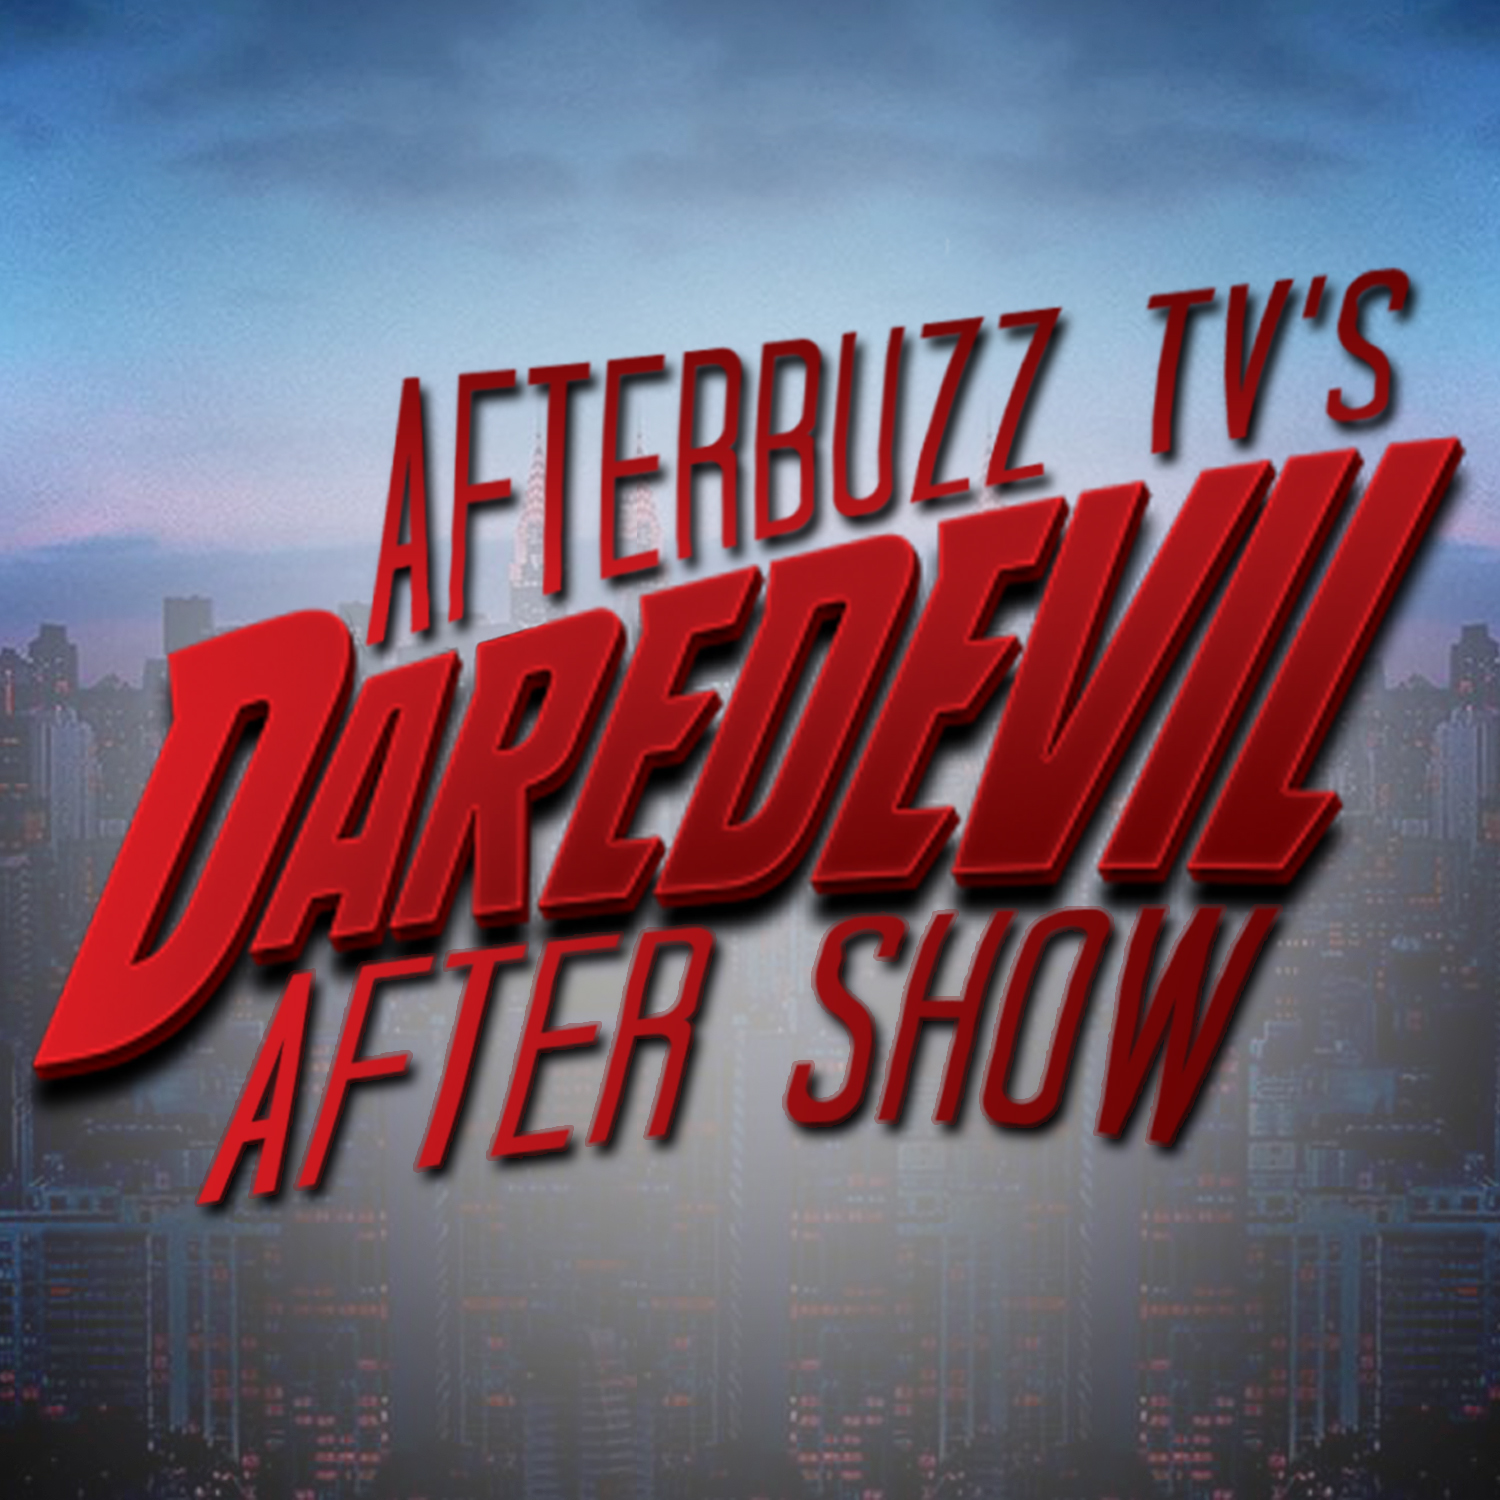 Daredevil After Show